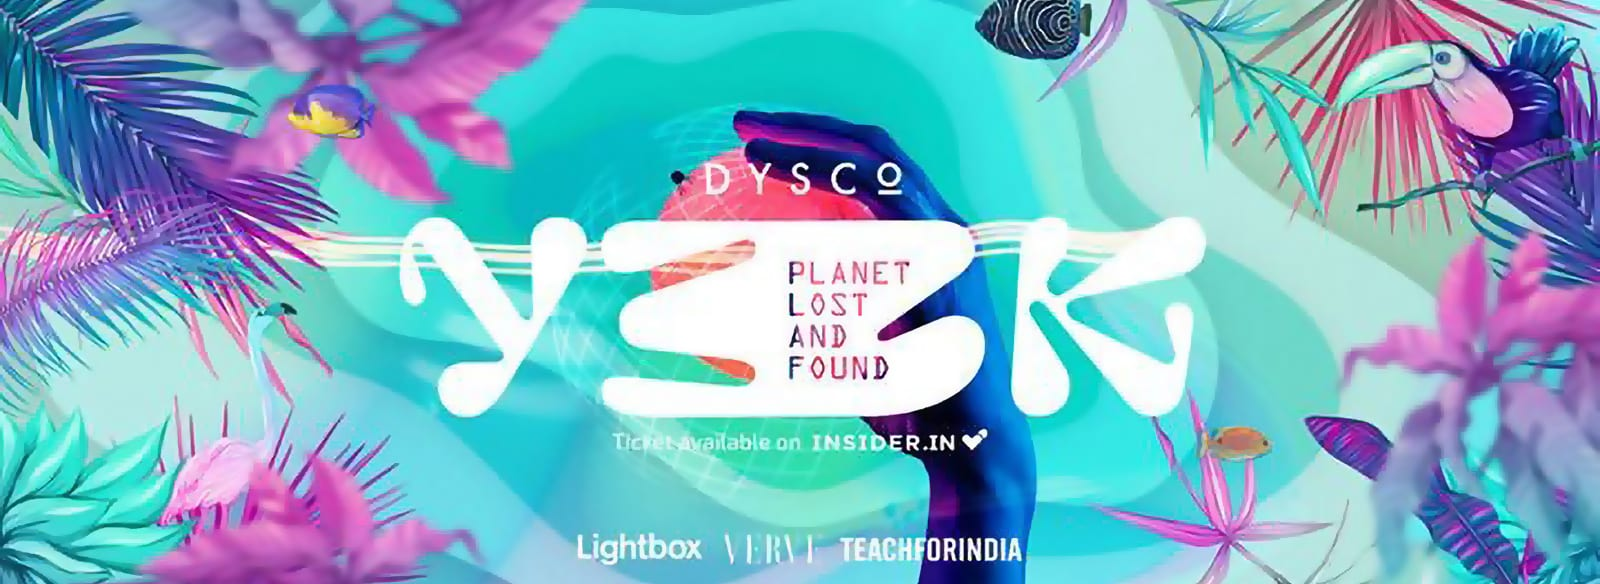 Dysco's Y3K: Planet Lost & Found Brings Sustainability Thought Leaders Together - Seams For Dreams